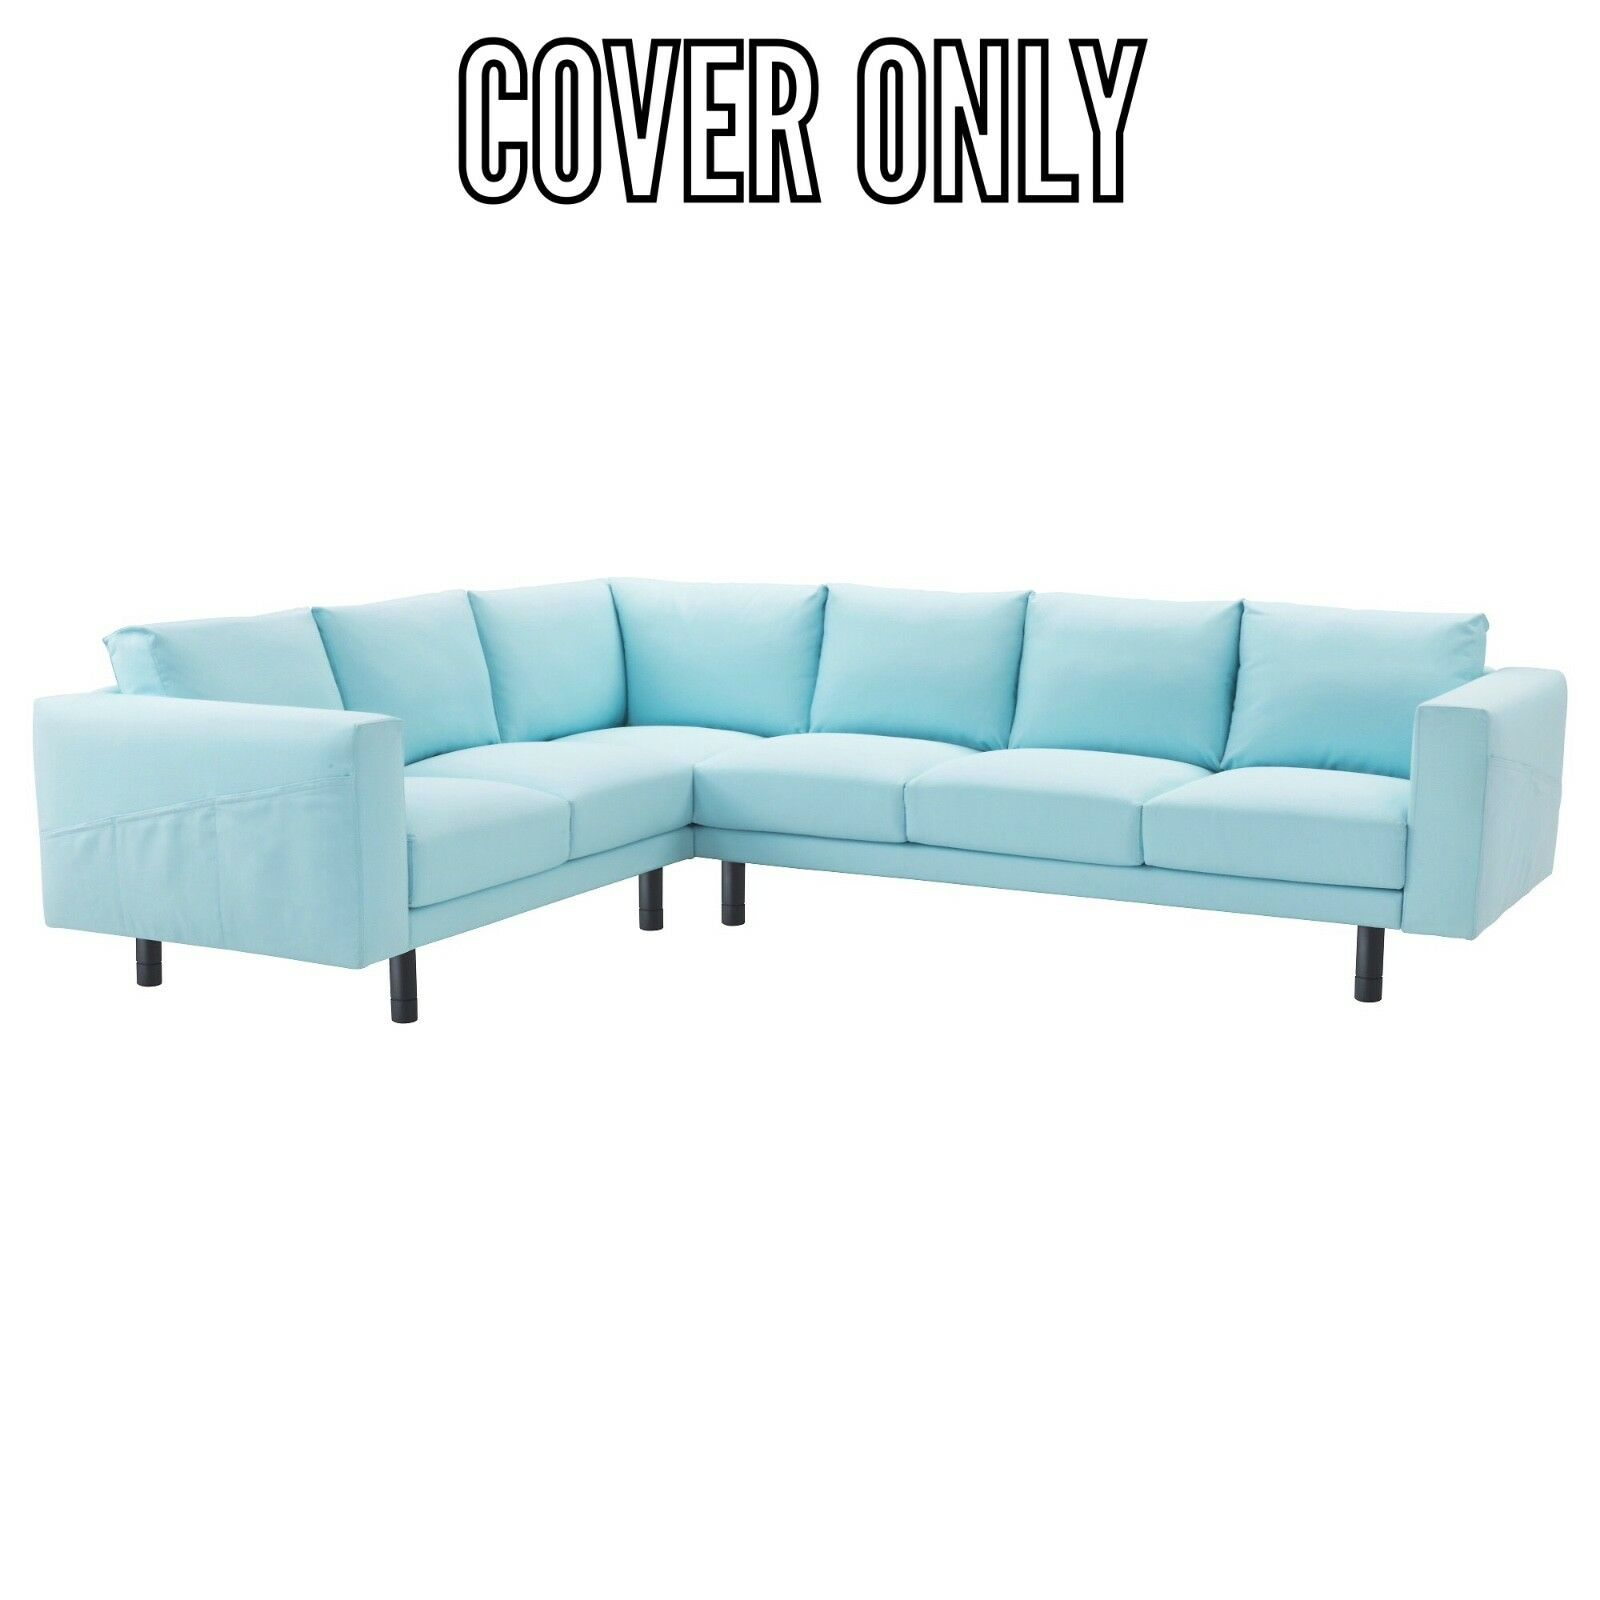 IKEA COVER FOR NORSBORG SECTIONAL 5 SEAT CORNER SOFA EDUM LIGHT BLUE